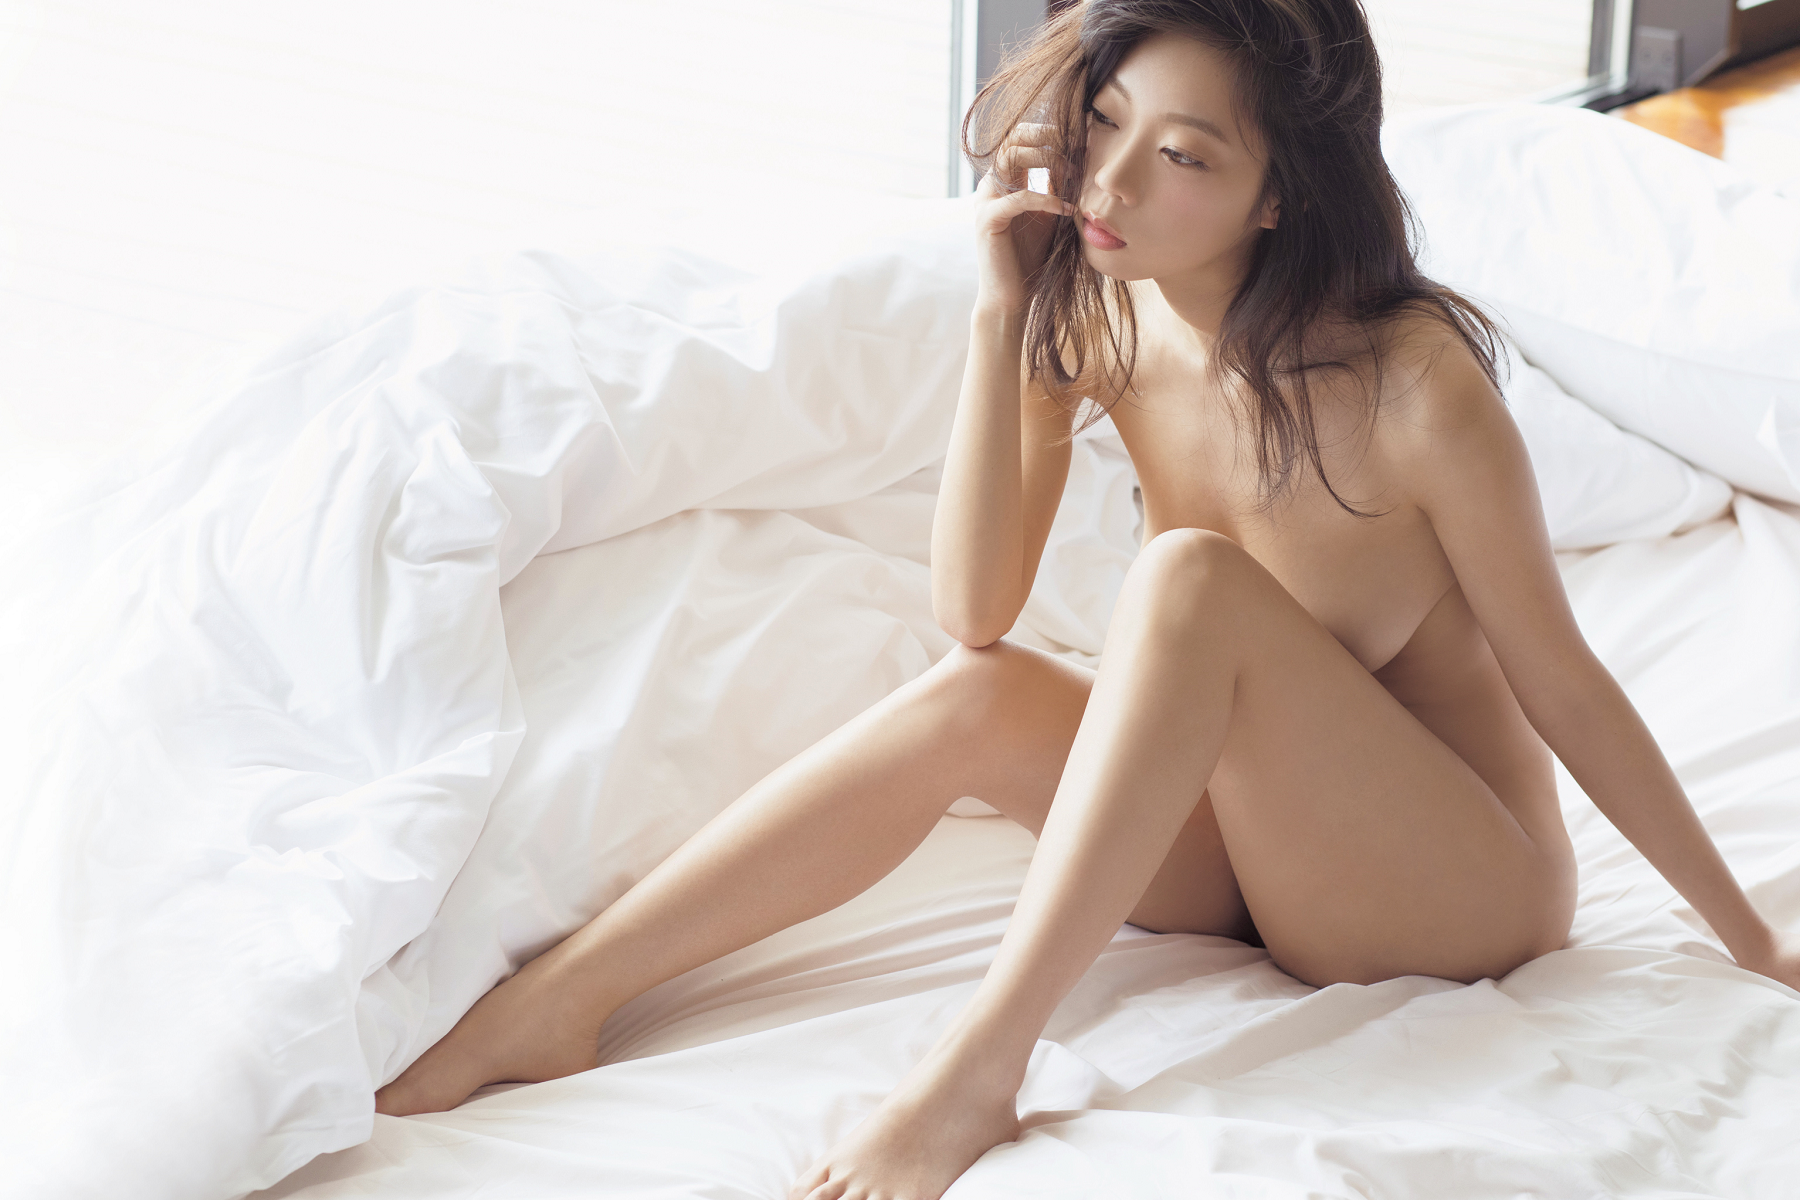 hot Japanese girl in nude